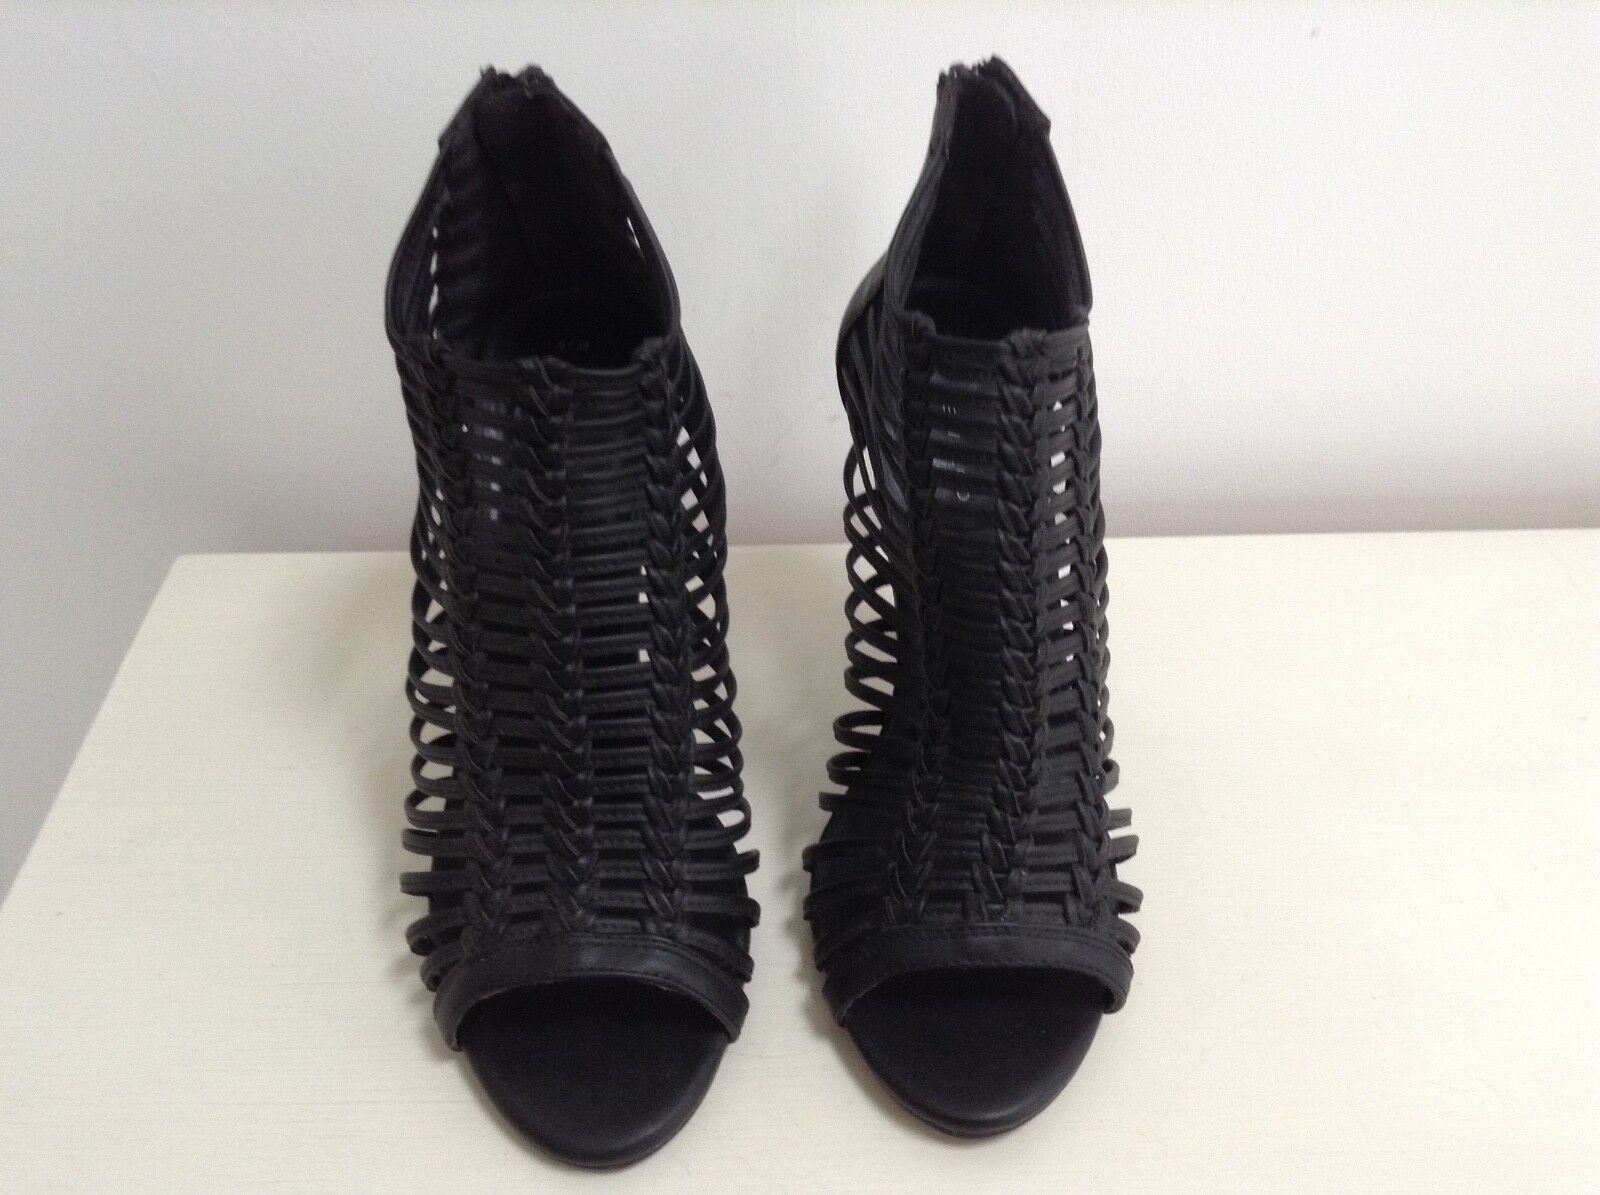 Ladies Black High Look Heeled sandals from New Look High Size 6/39 8a73ed